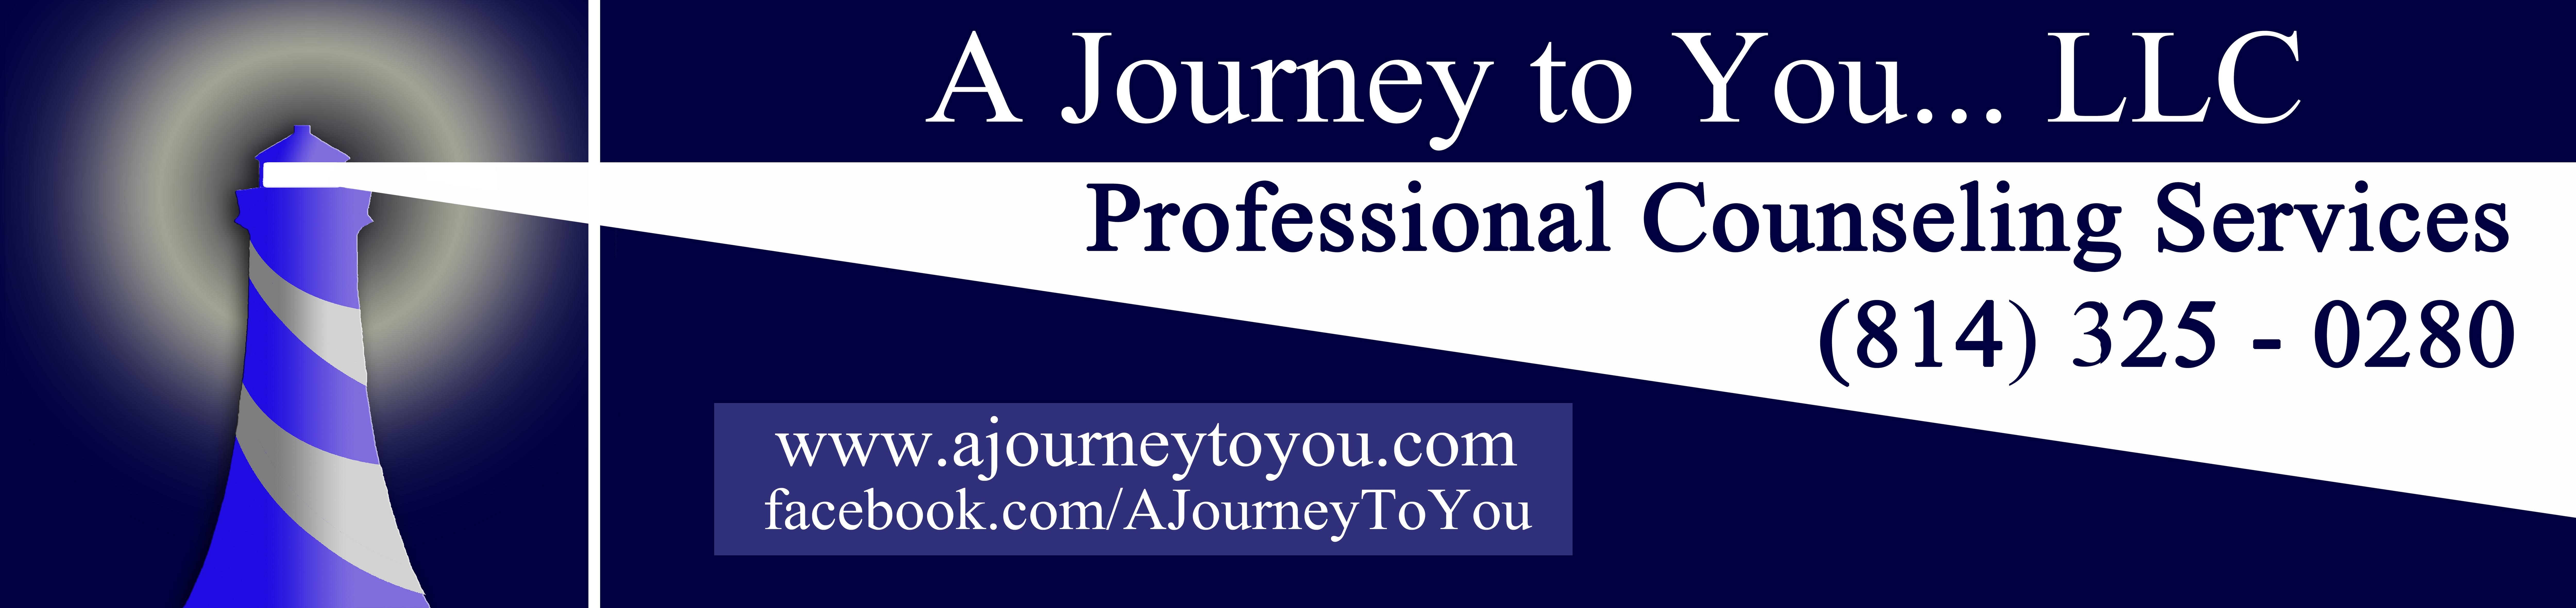 A Journey to You Professional Counseling Services State College